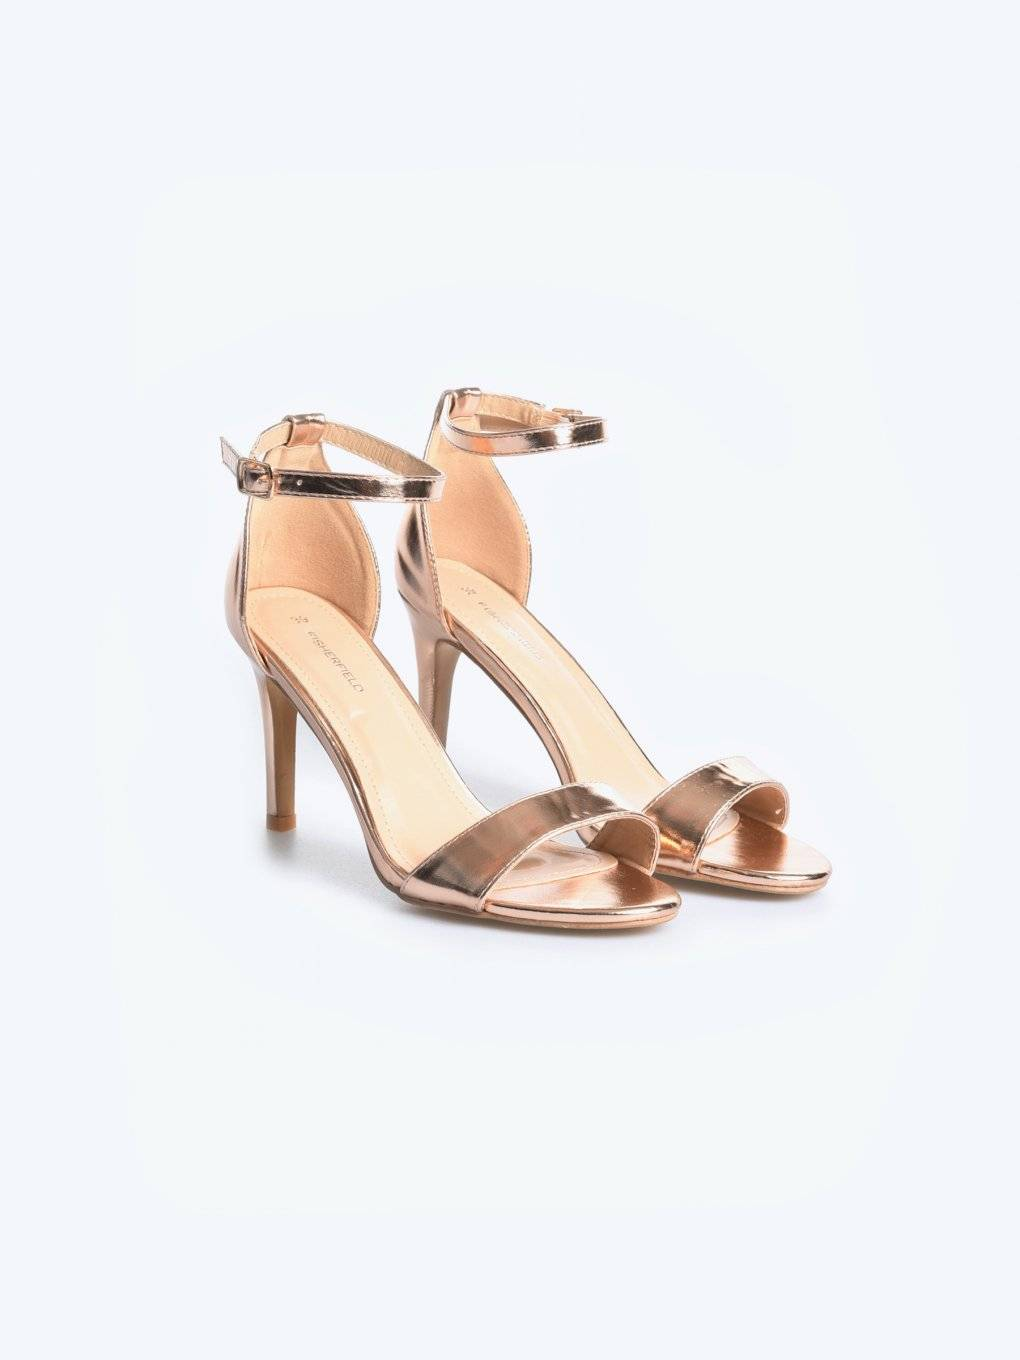 High heel metallic sandals